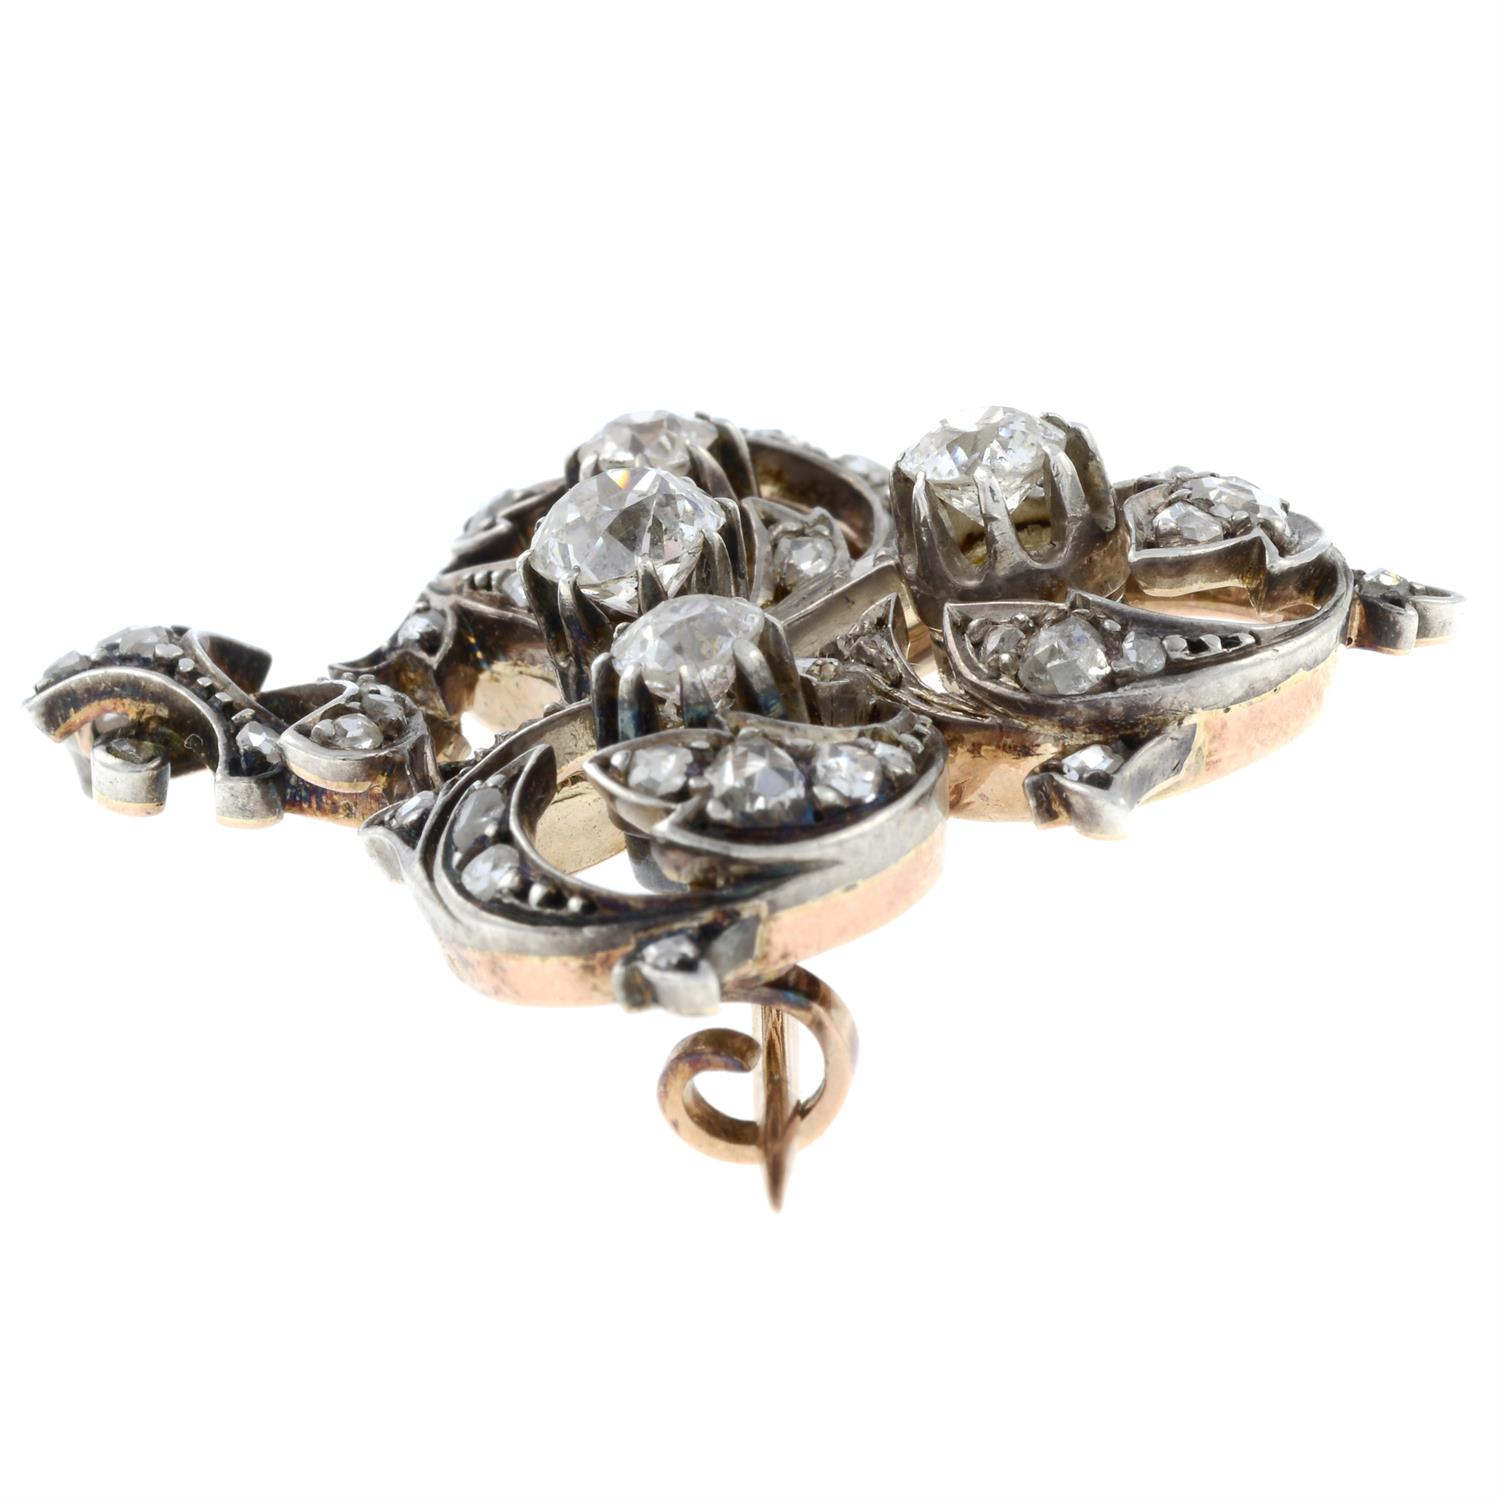 A late 19th century silver and gold, old and rose-cut diamond brooch. - Image 4 of 5